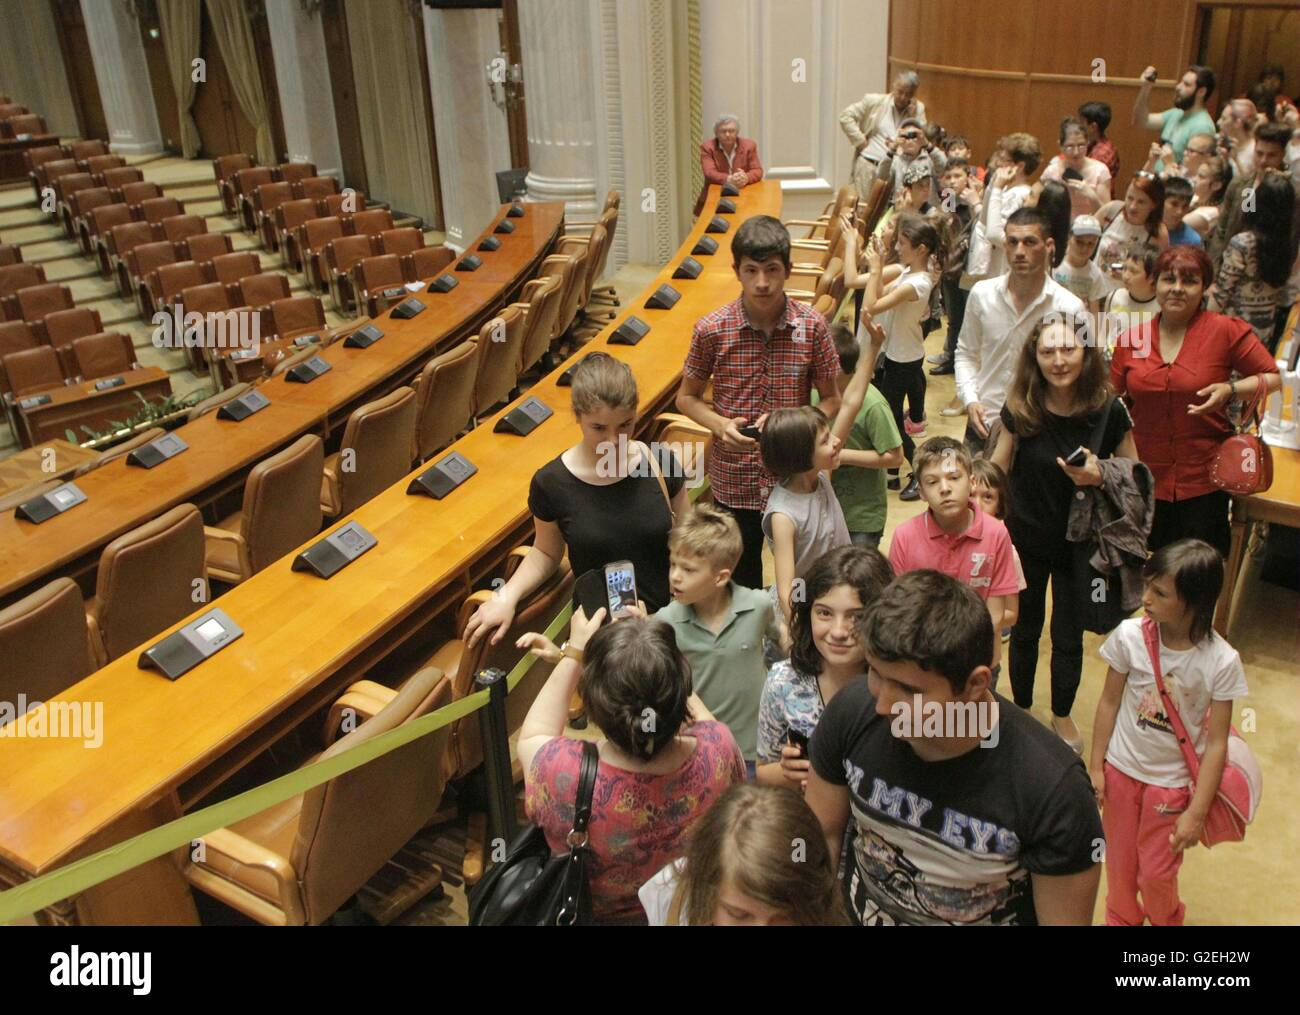 Bucharest, Romania. 29th May, 2016. Children accompanied by their parents visit the parliament building in Bucharest, - Stock Image